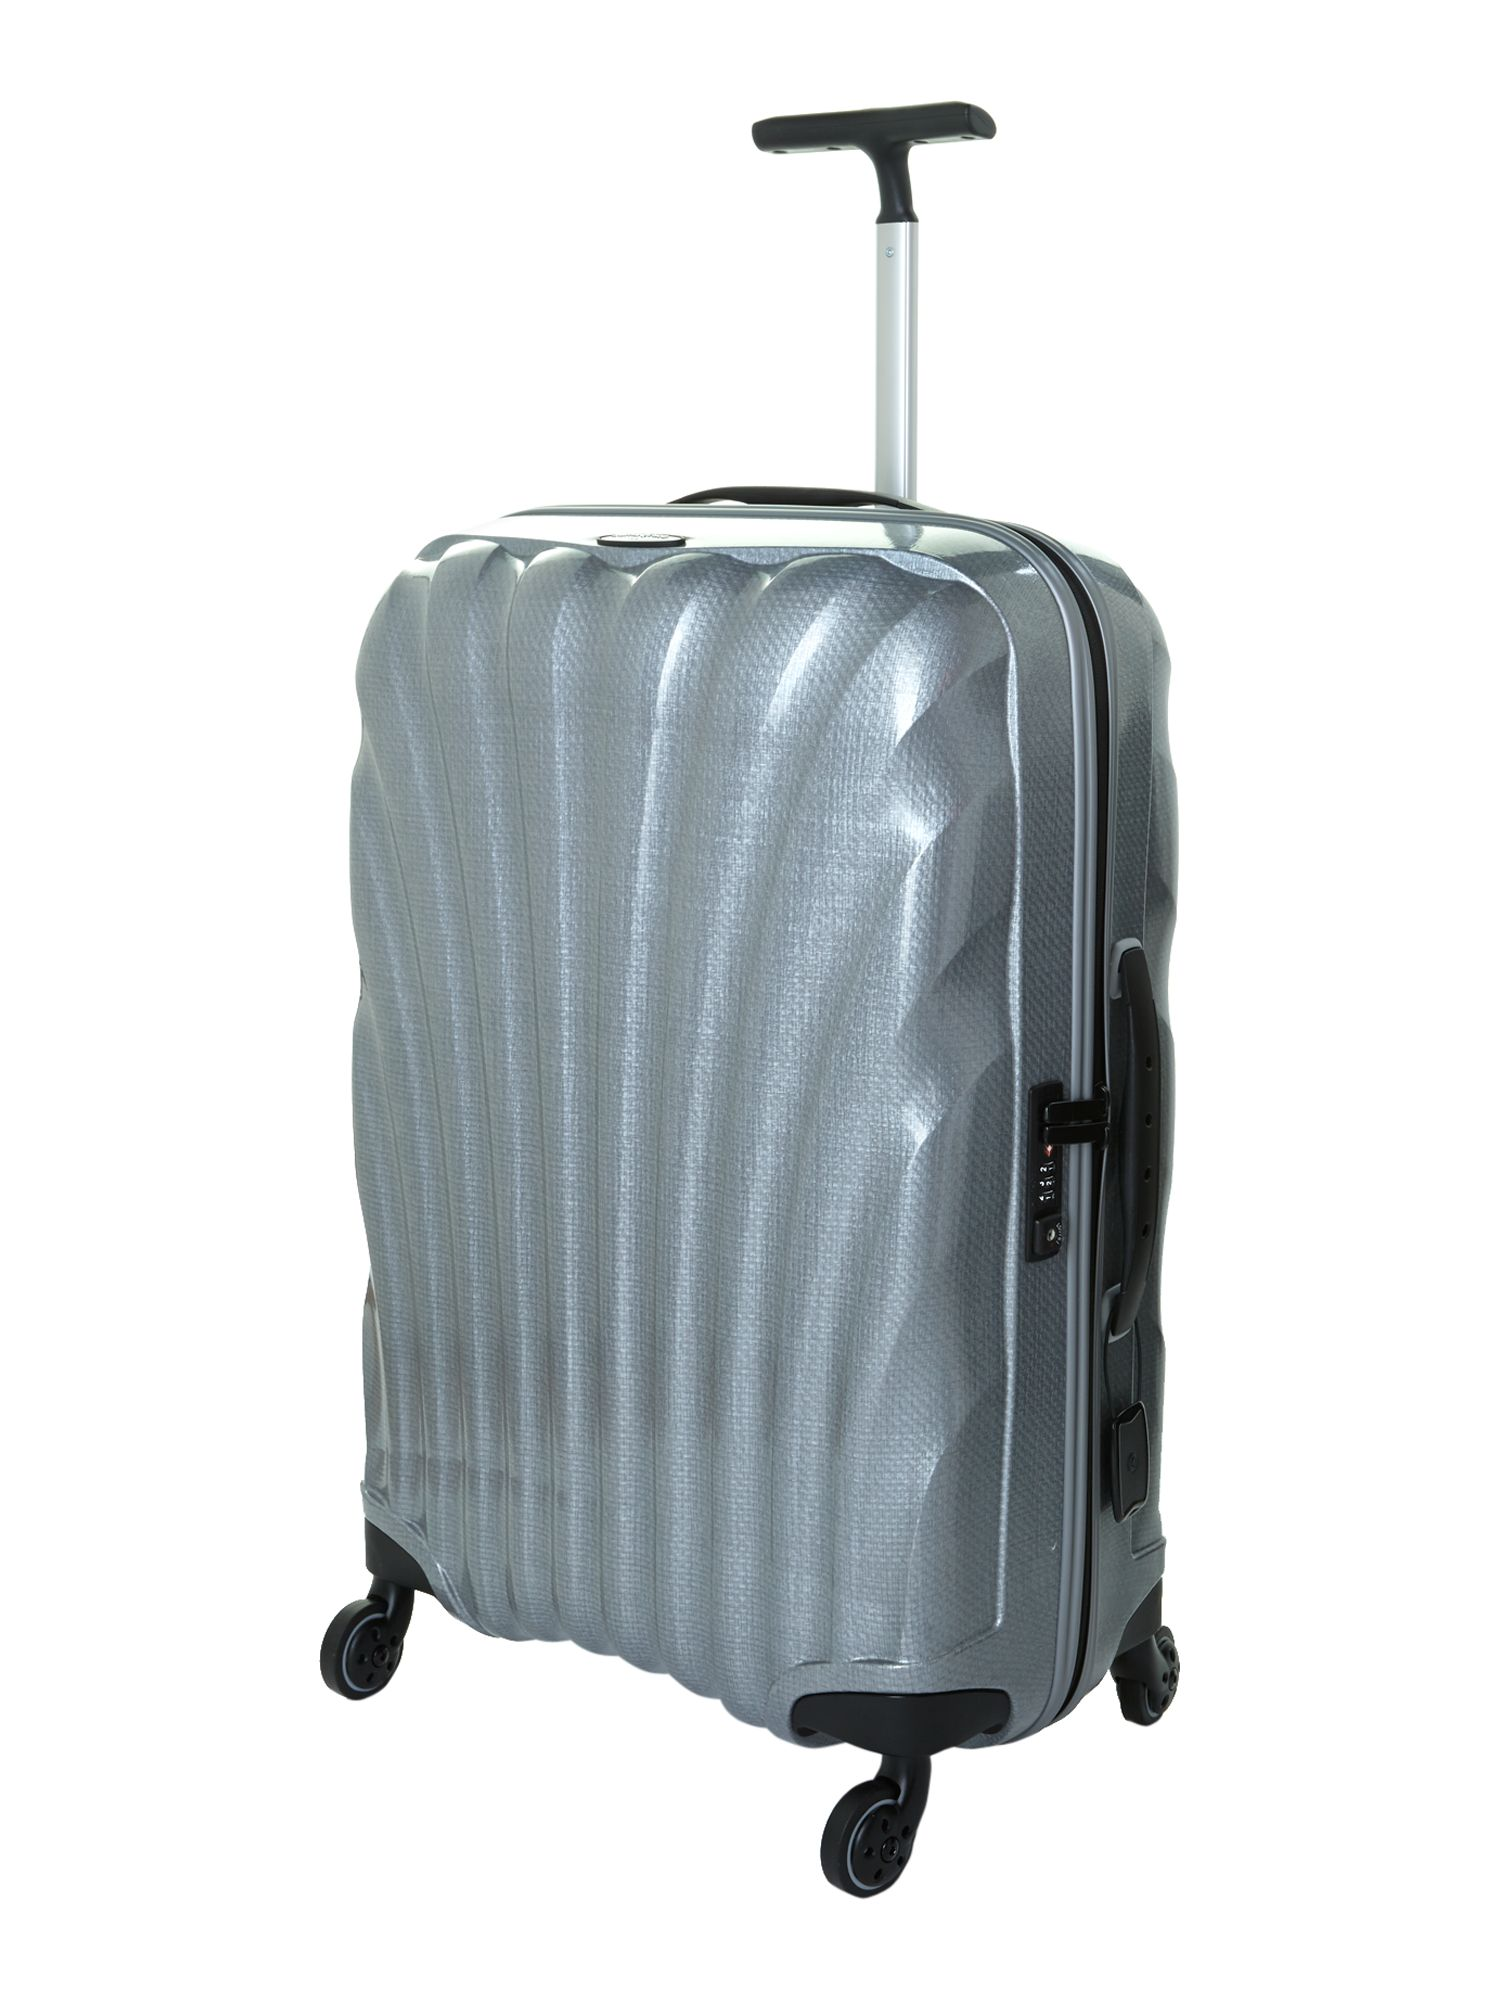 New cosmolite 4-wheel silver medium suitcase